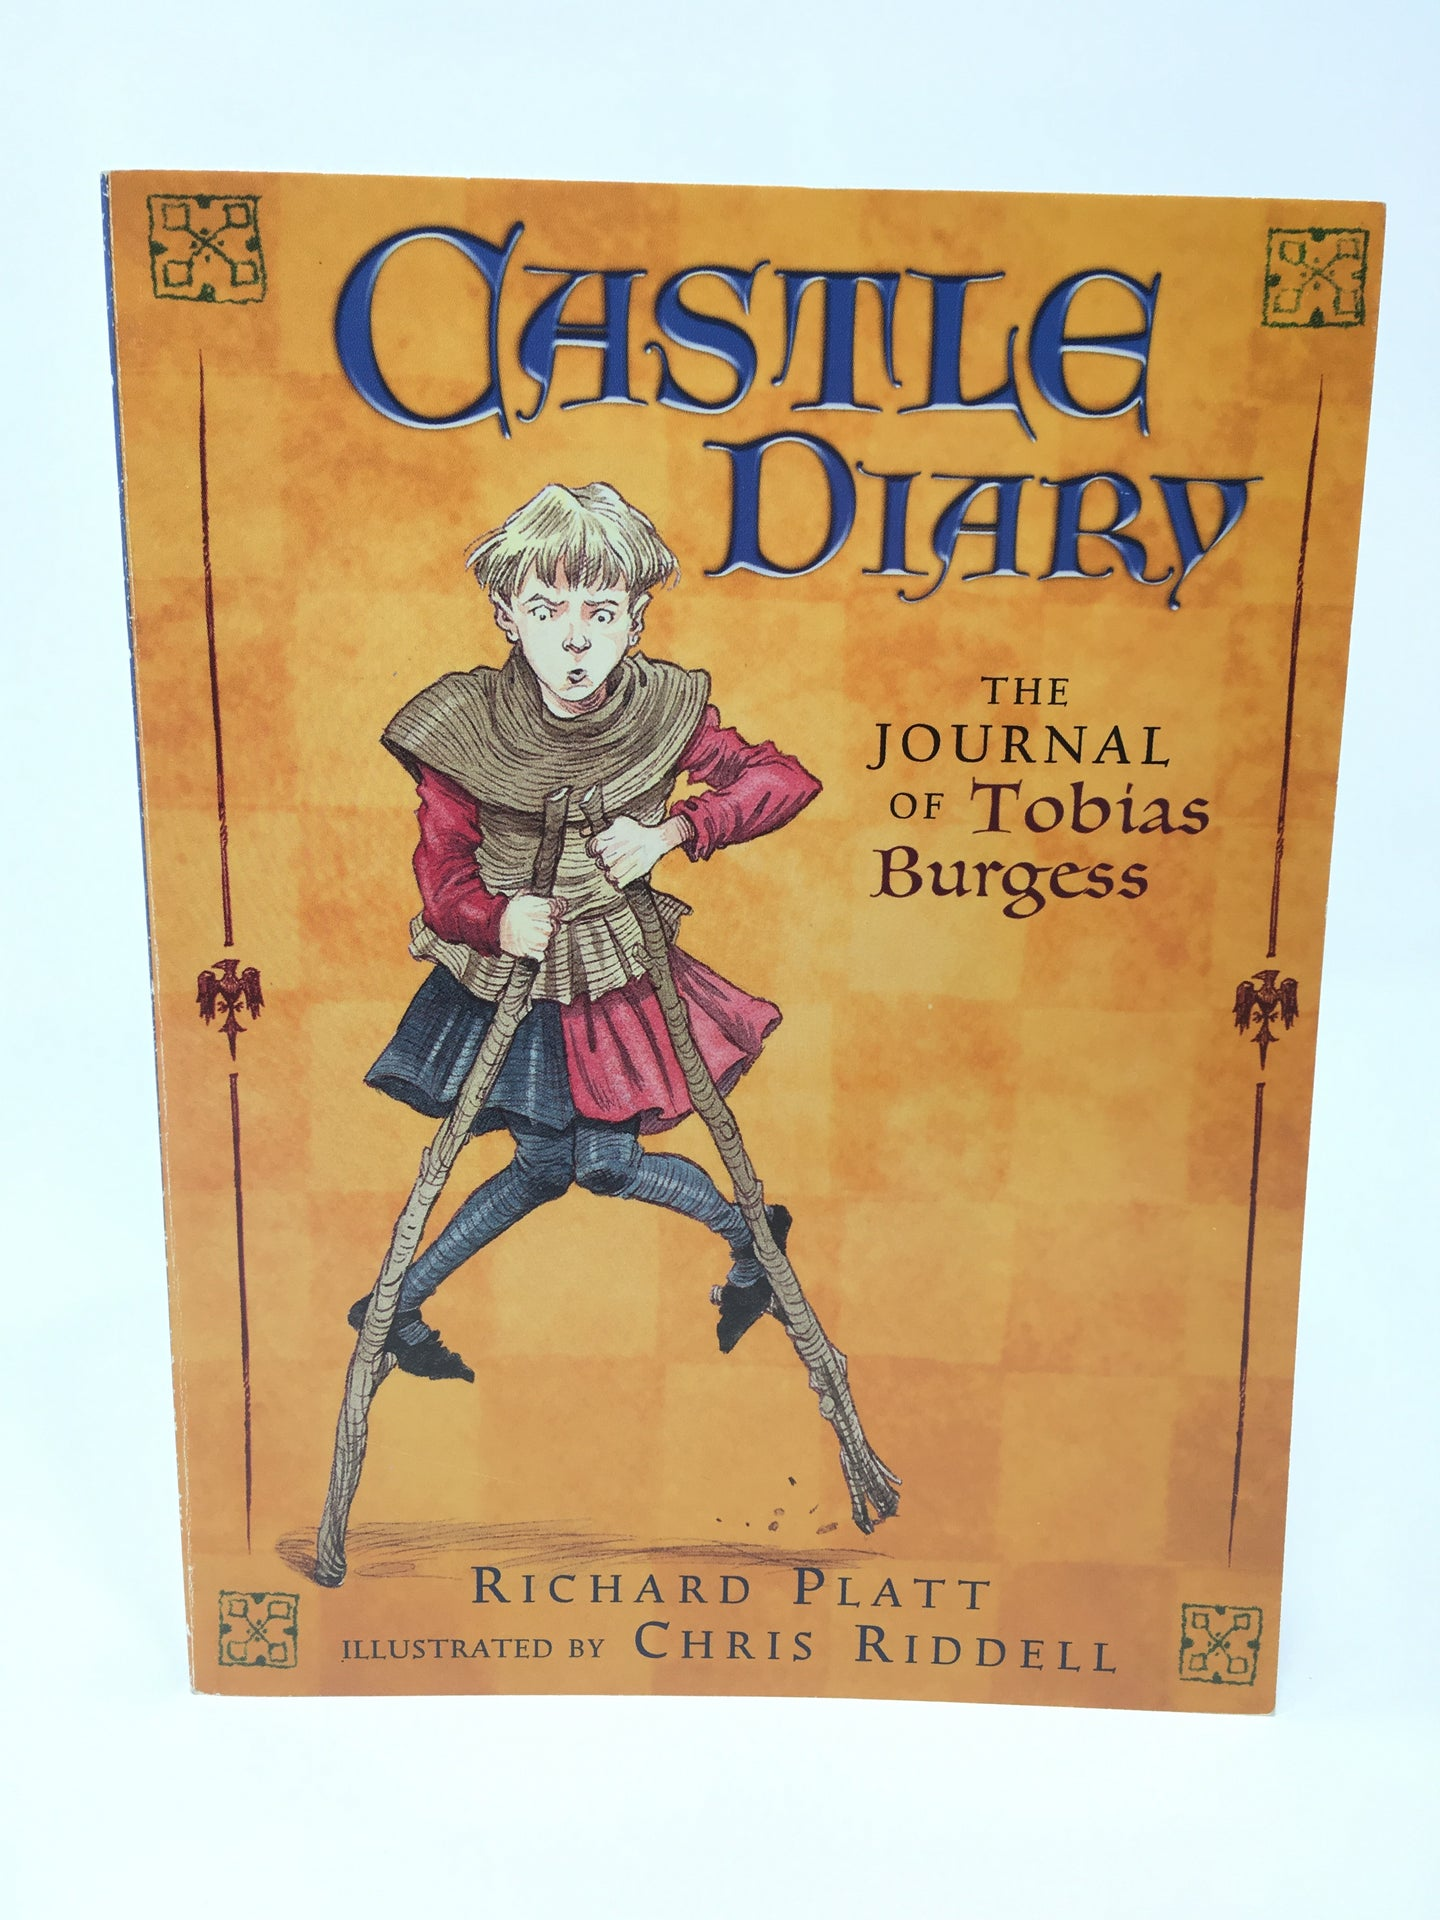 Castle Diary: The Journal of Tobias Burgess by Richard Platt (Used-Like New) - Little Green Schoolhouse Books